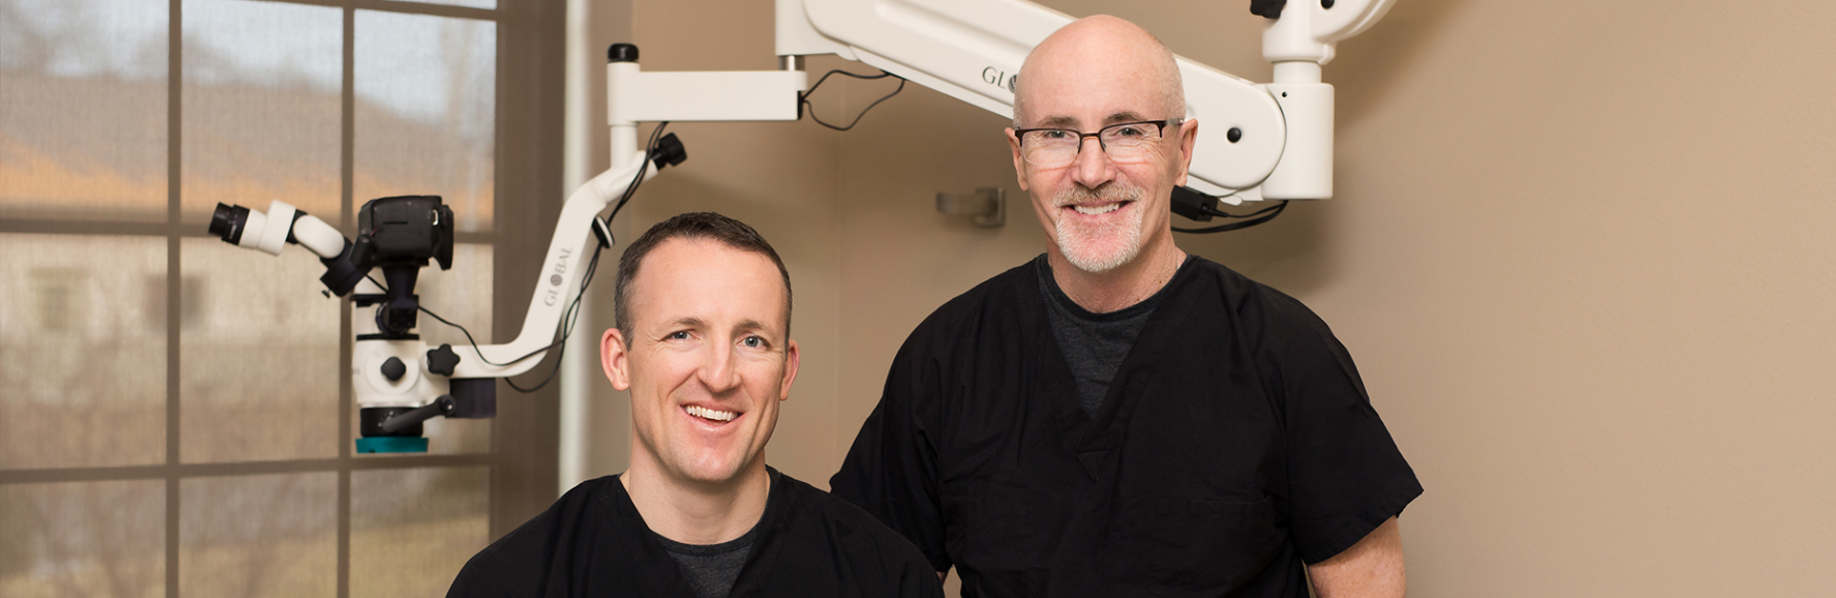 Eastern Iowa Endodontics reviews | Endodontists at 2929 Center Point Rd NE - Cedar Rapids IA